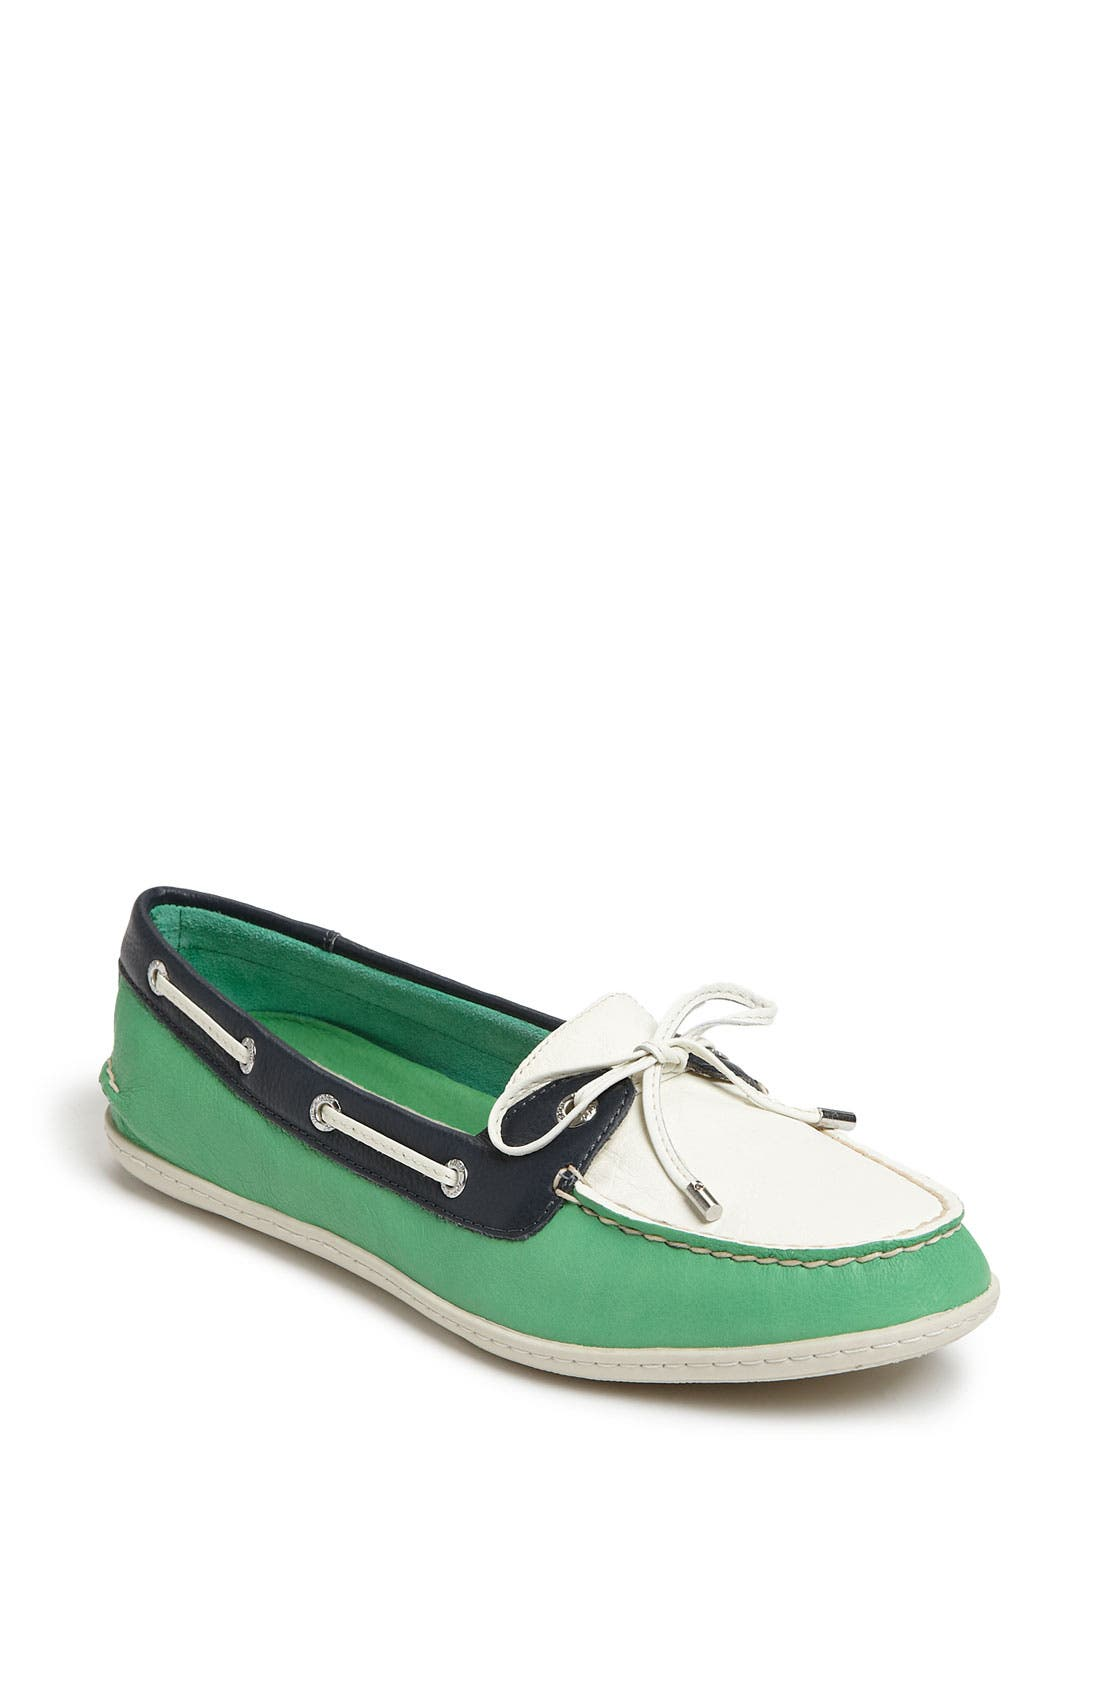 Main Image - Sperry Top-Sider® 'Montauk' Leather Boat Shoe